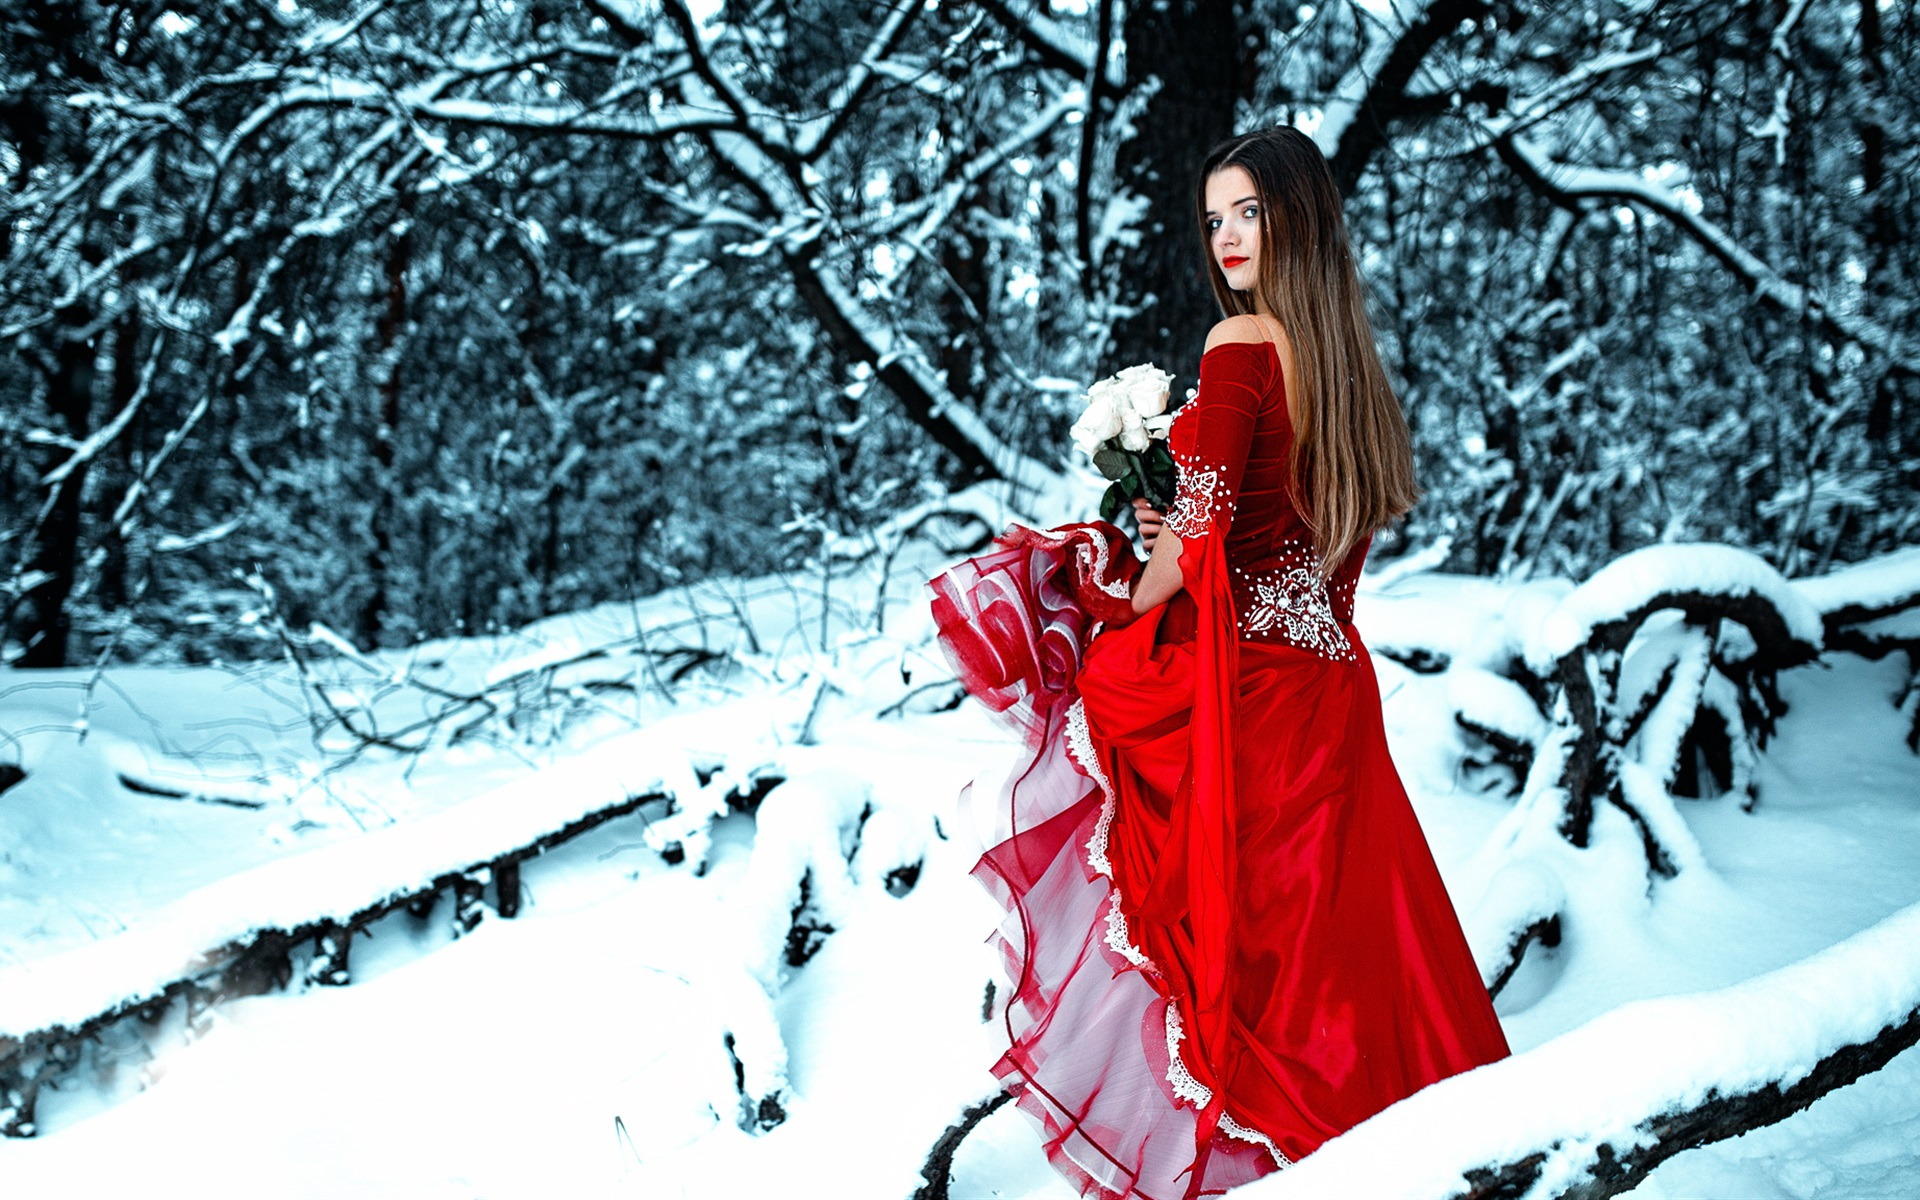 Dreamy Girl Wallpapers Wallpaper Red Dress Girl In Winter Look Back Rose Snow